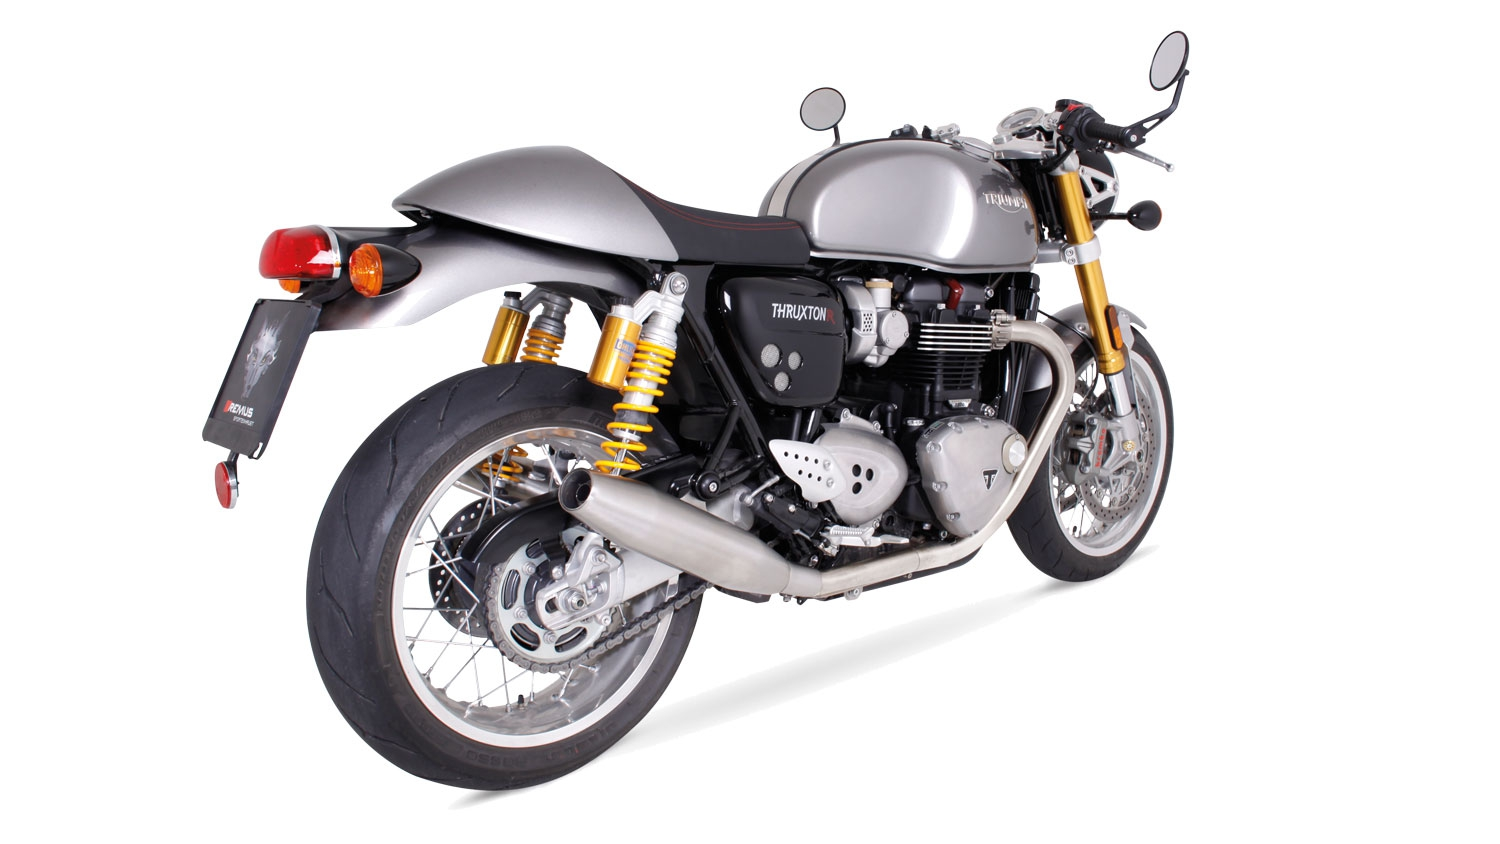 remus news bike info 16 16 triumph thruxton 1200 r. Black Bedroom Furniture Sets. Home Design Ideas